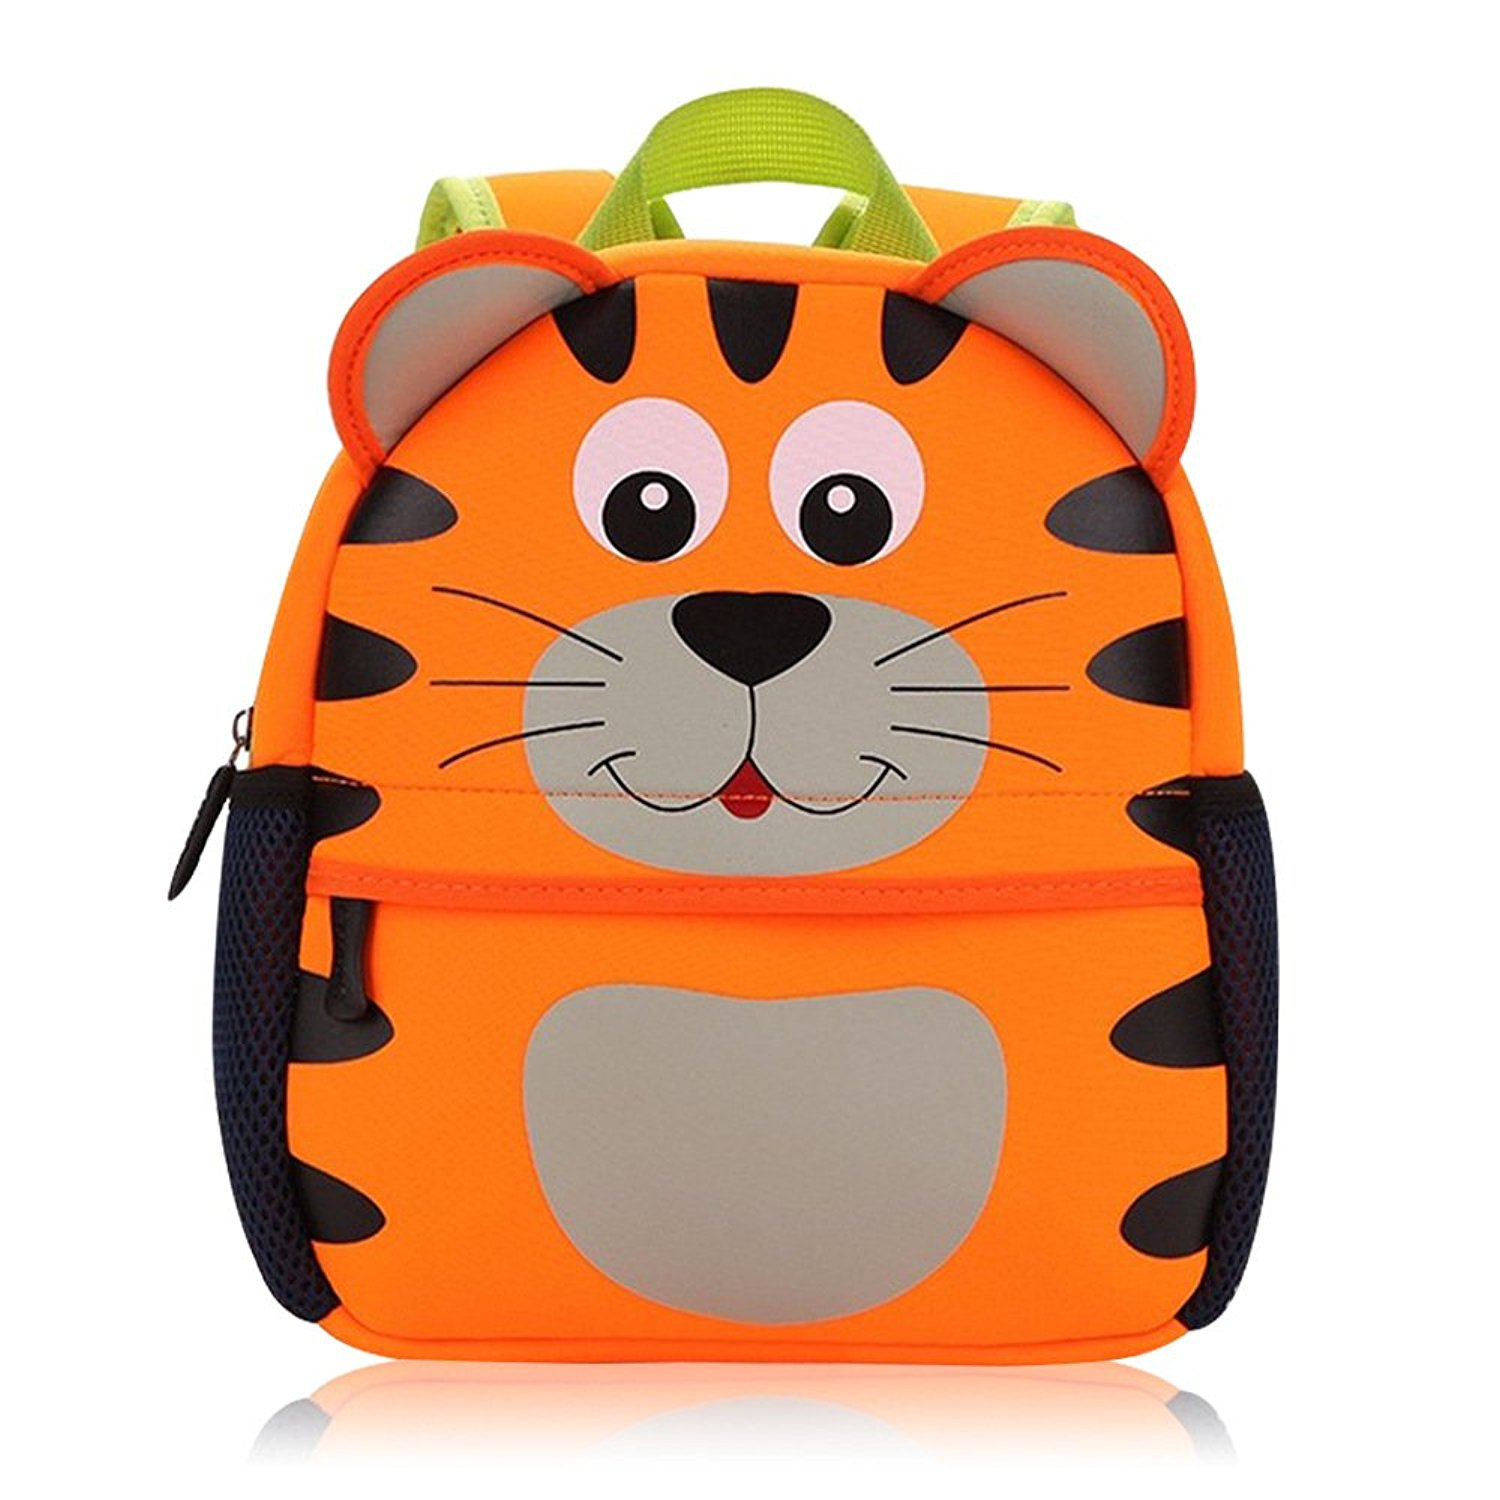 09295231004f Get Quotations · Vox Kids Cute Backpack Cartoon Toddler Backpack For Little Boy  Girl Animal Backpack For Toddlers